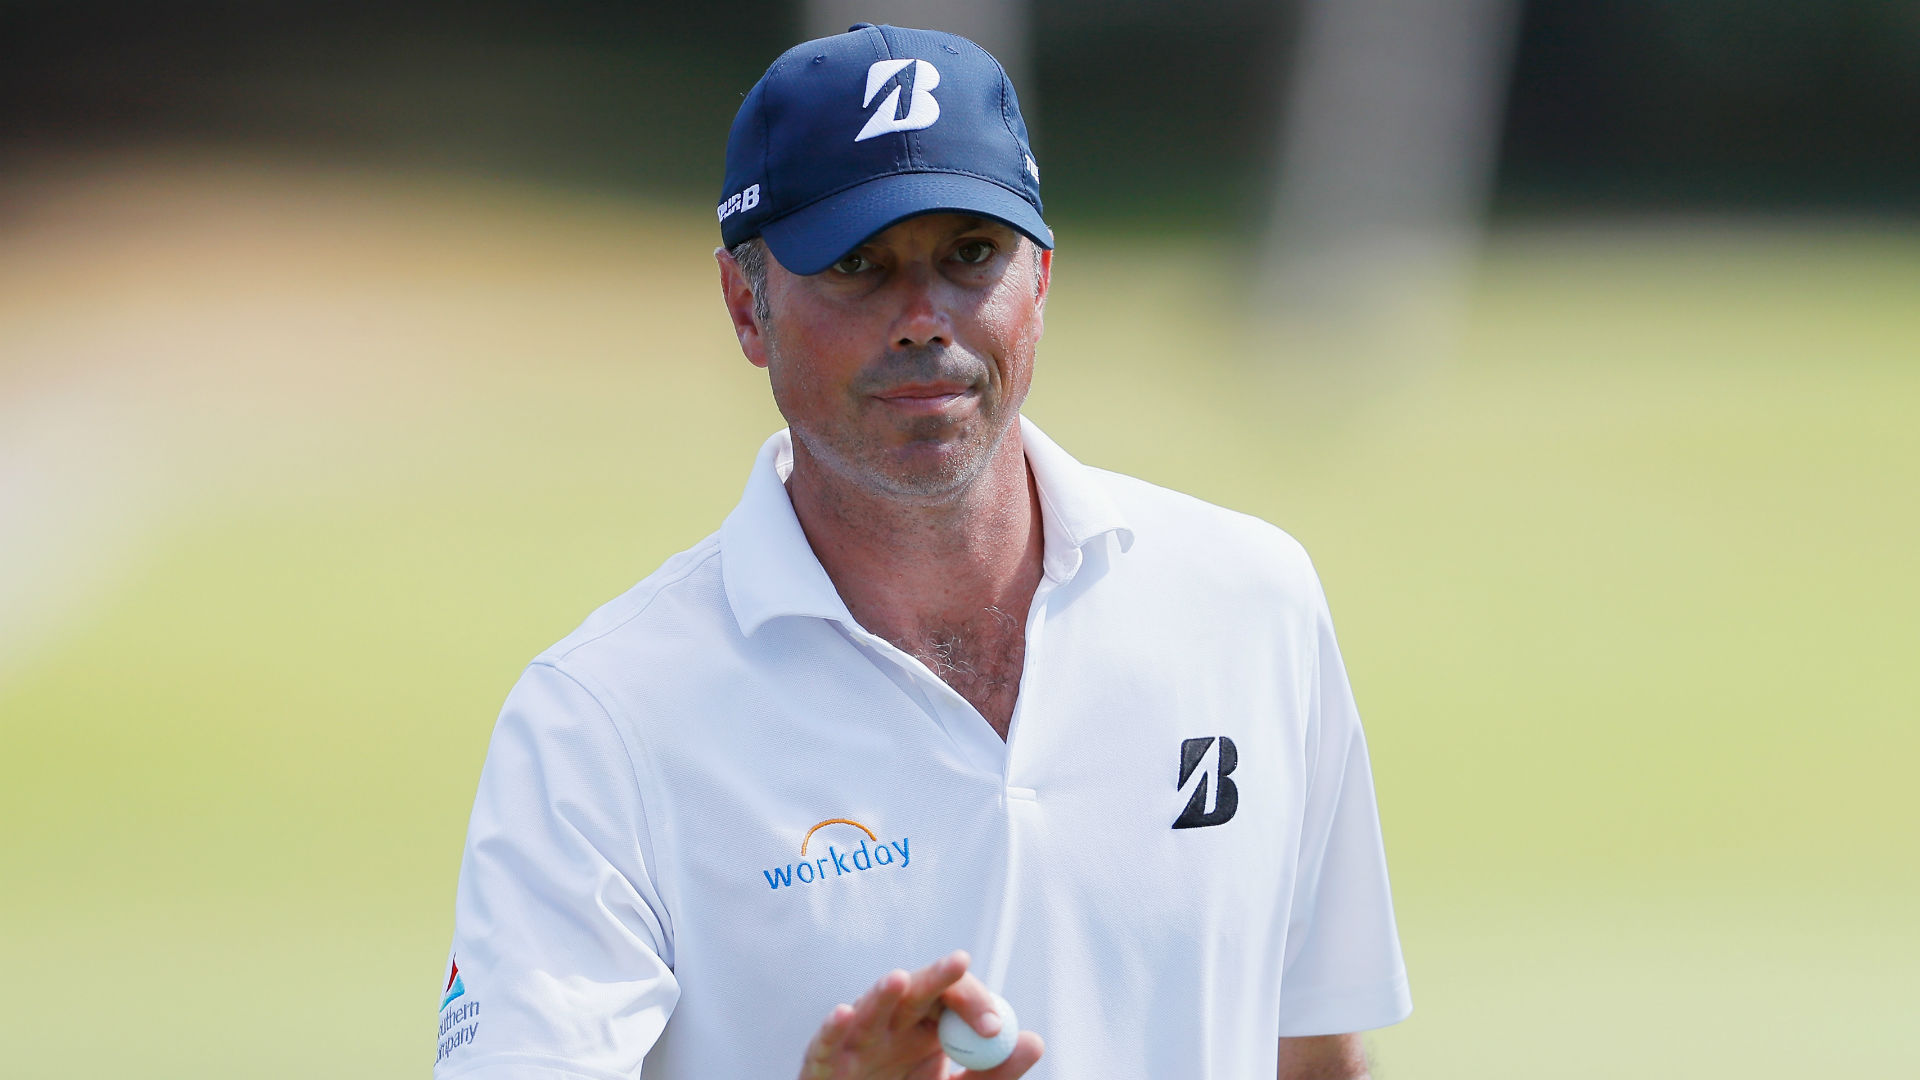 Kuchar moves into lead, Spieth misses cut in Hawaii